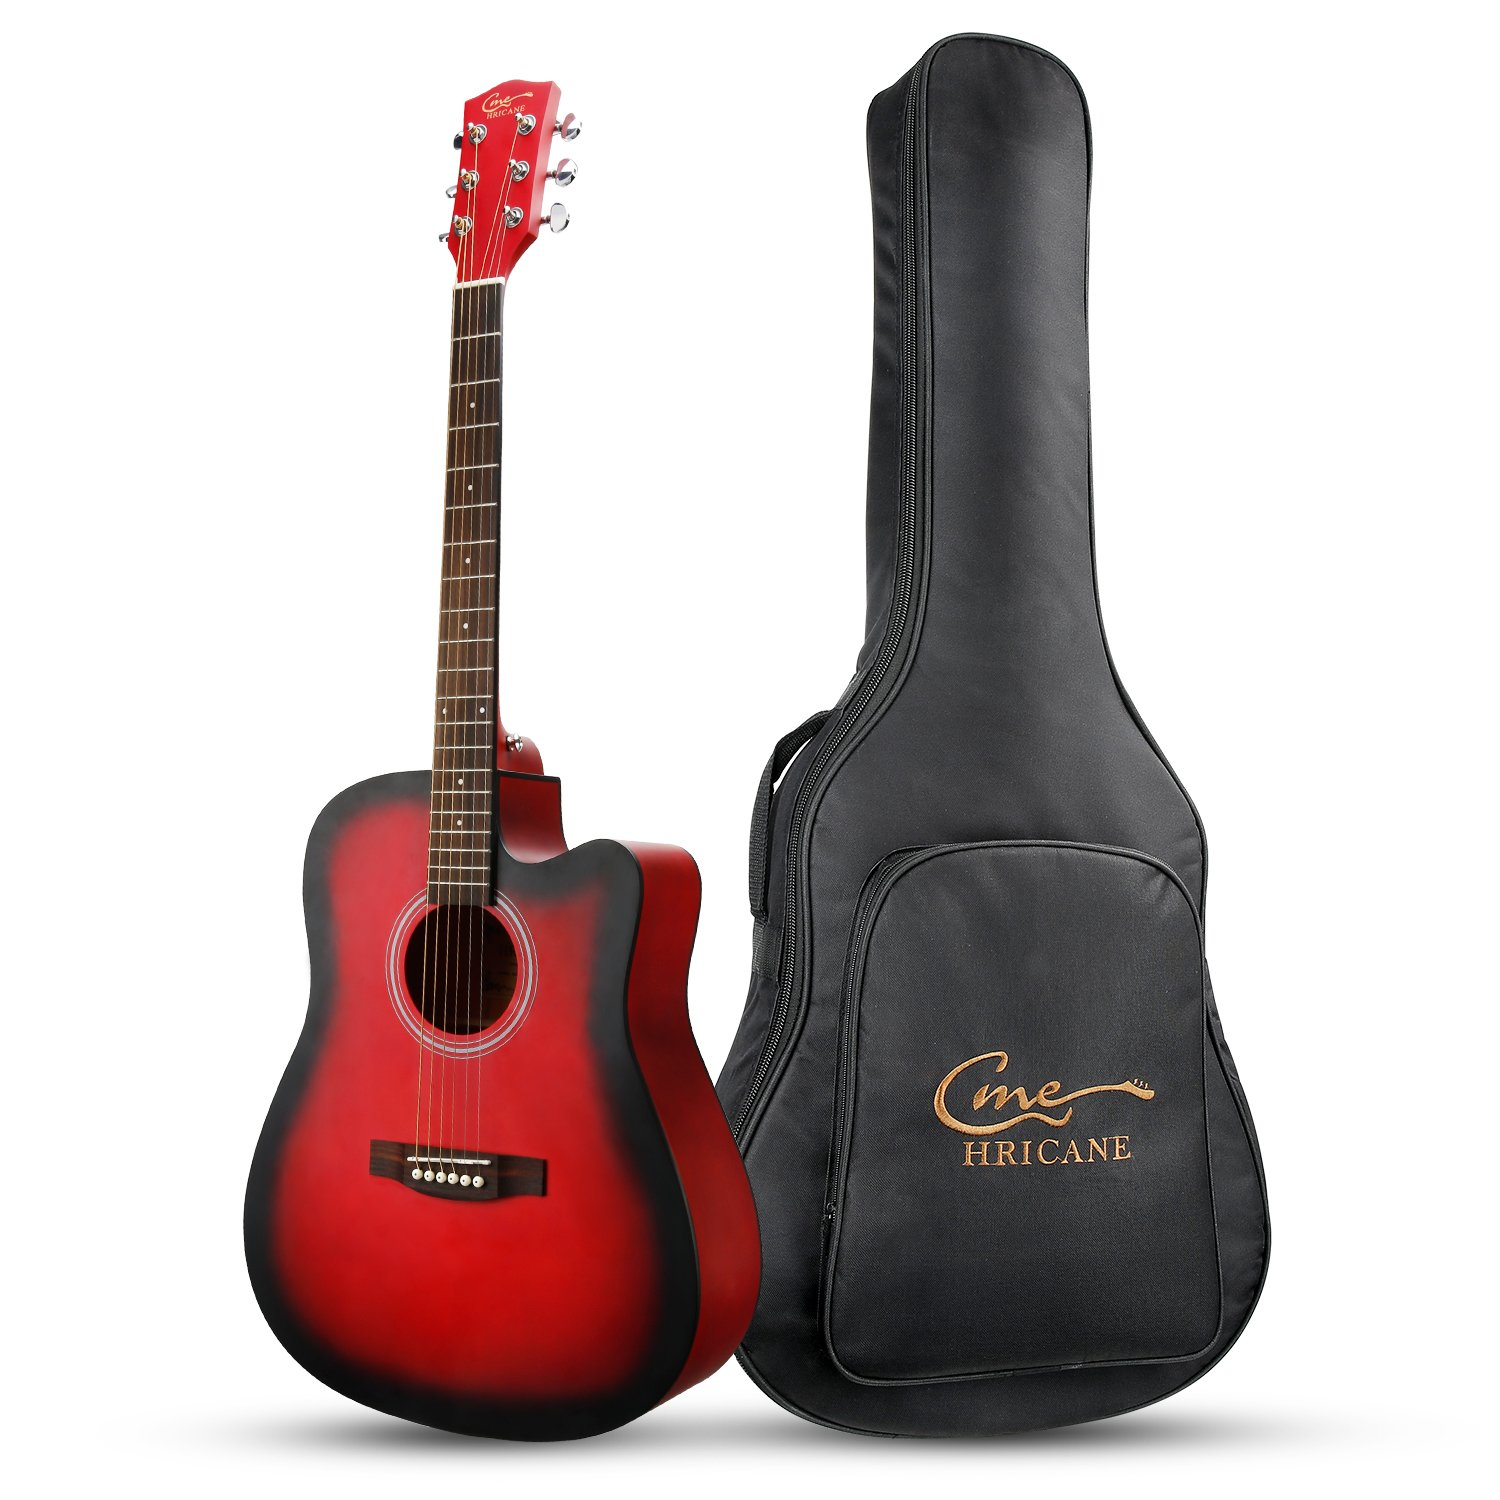 hricane beginner acoustic guitar 41 full size guitar